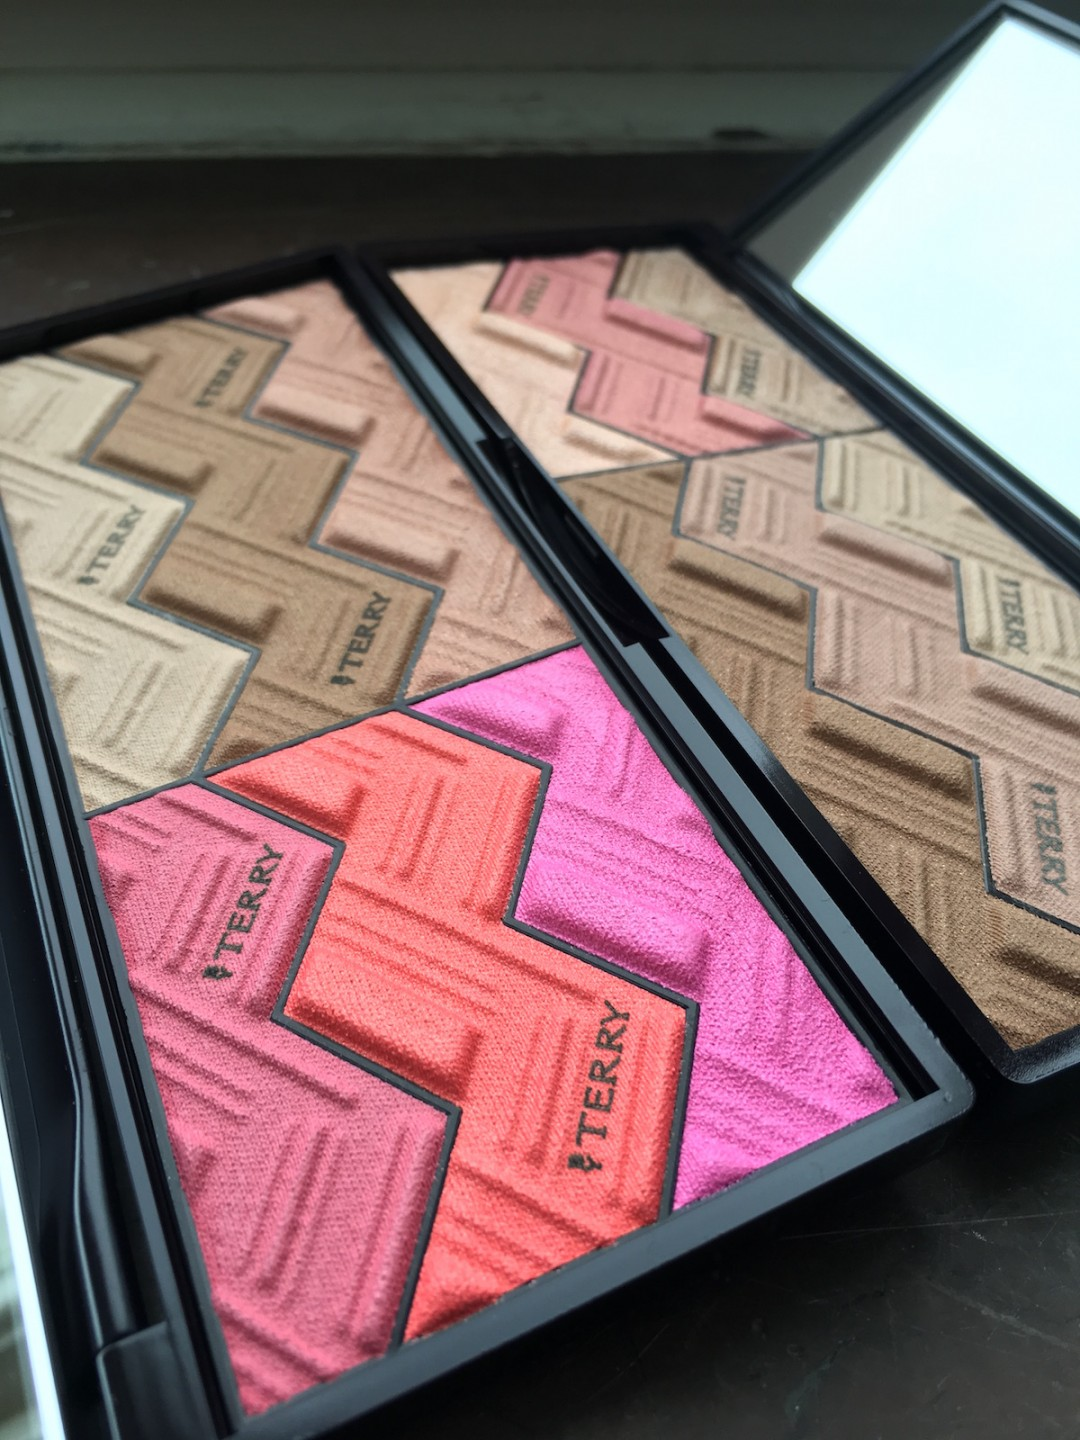 BY terry sun Cruise Palettes open 2